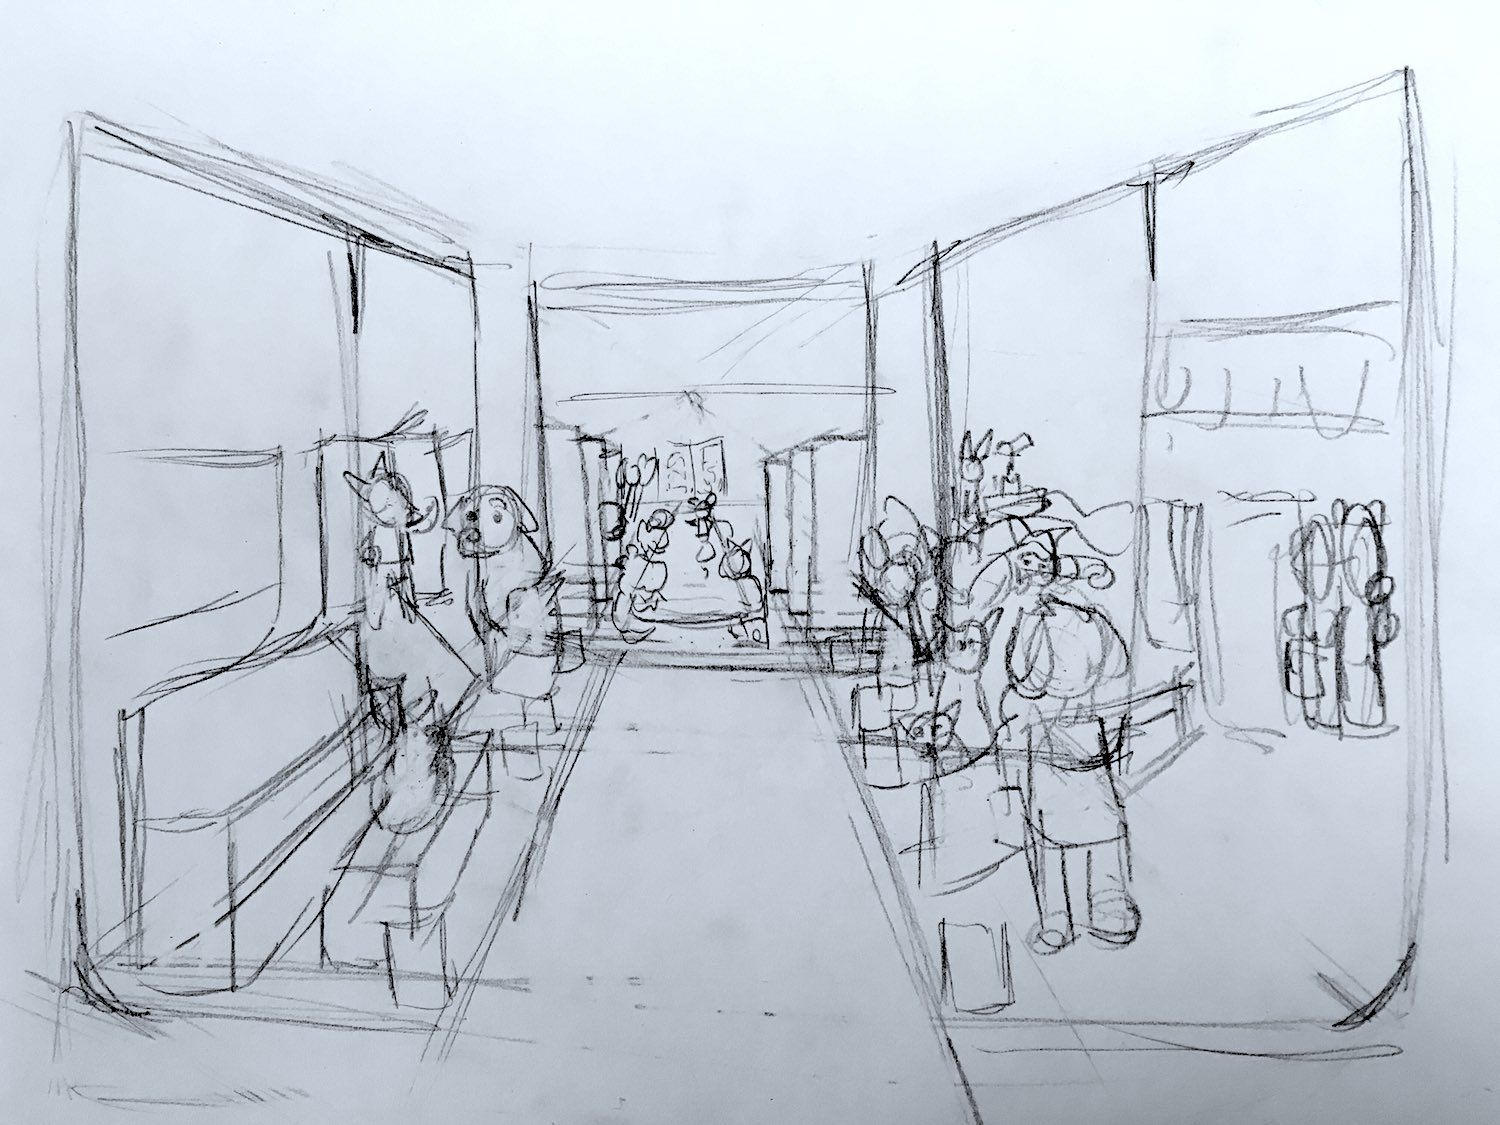 A head-on sketch of the show